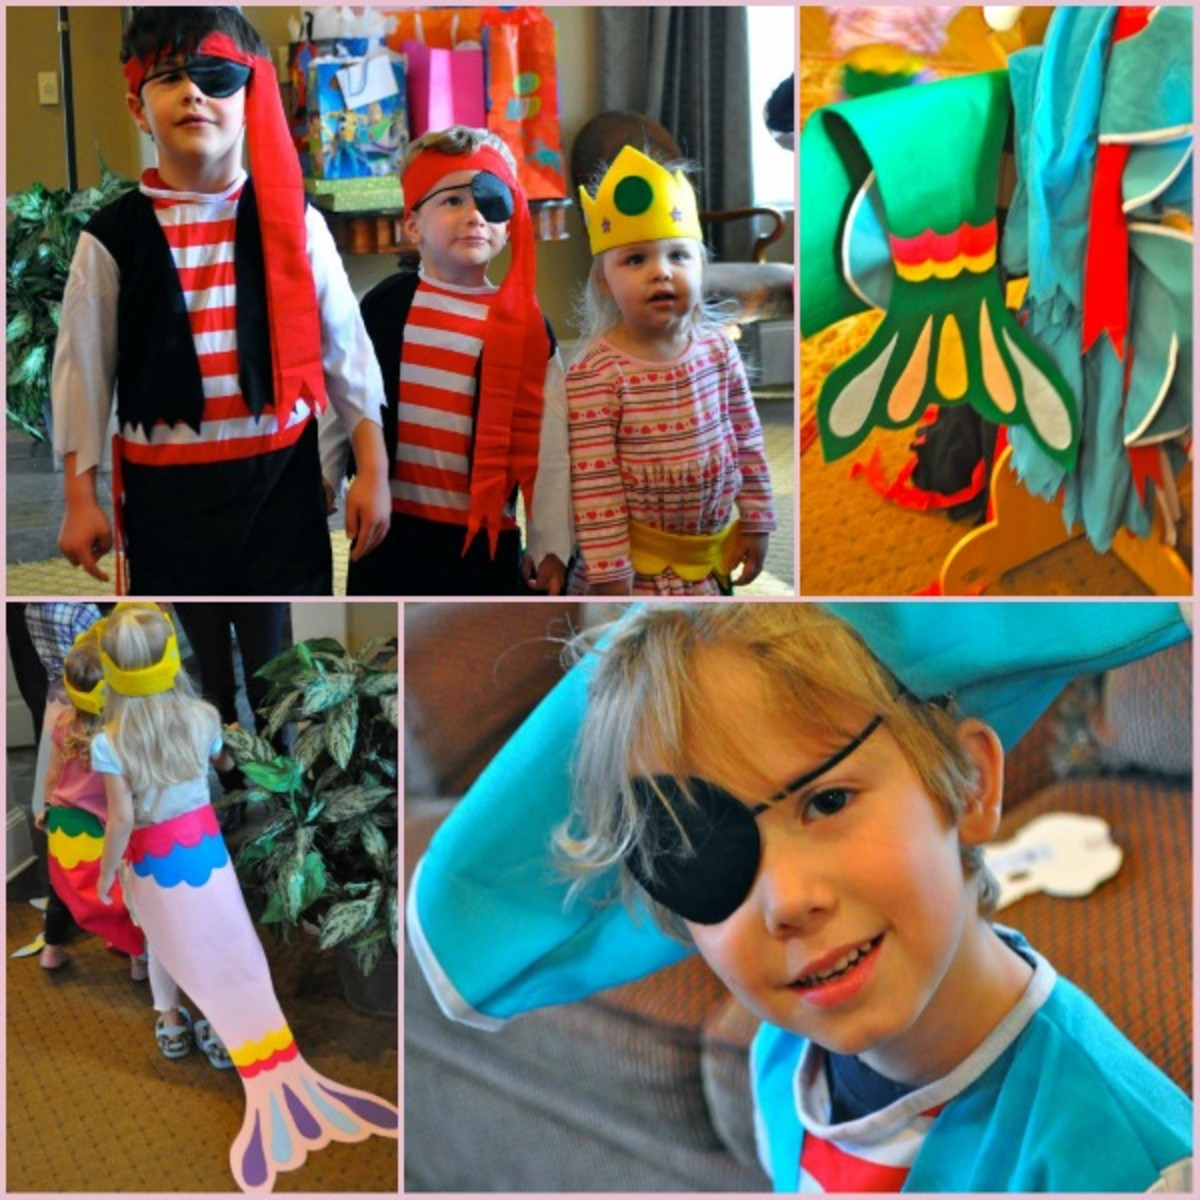 pirate and mermaid costumes at birthday party